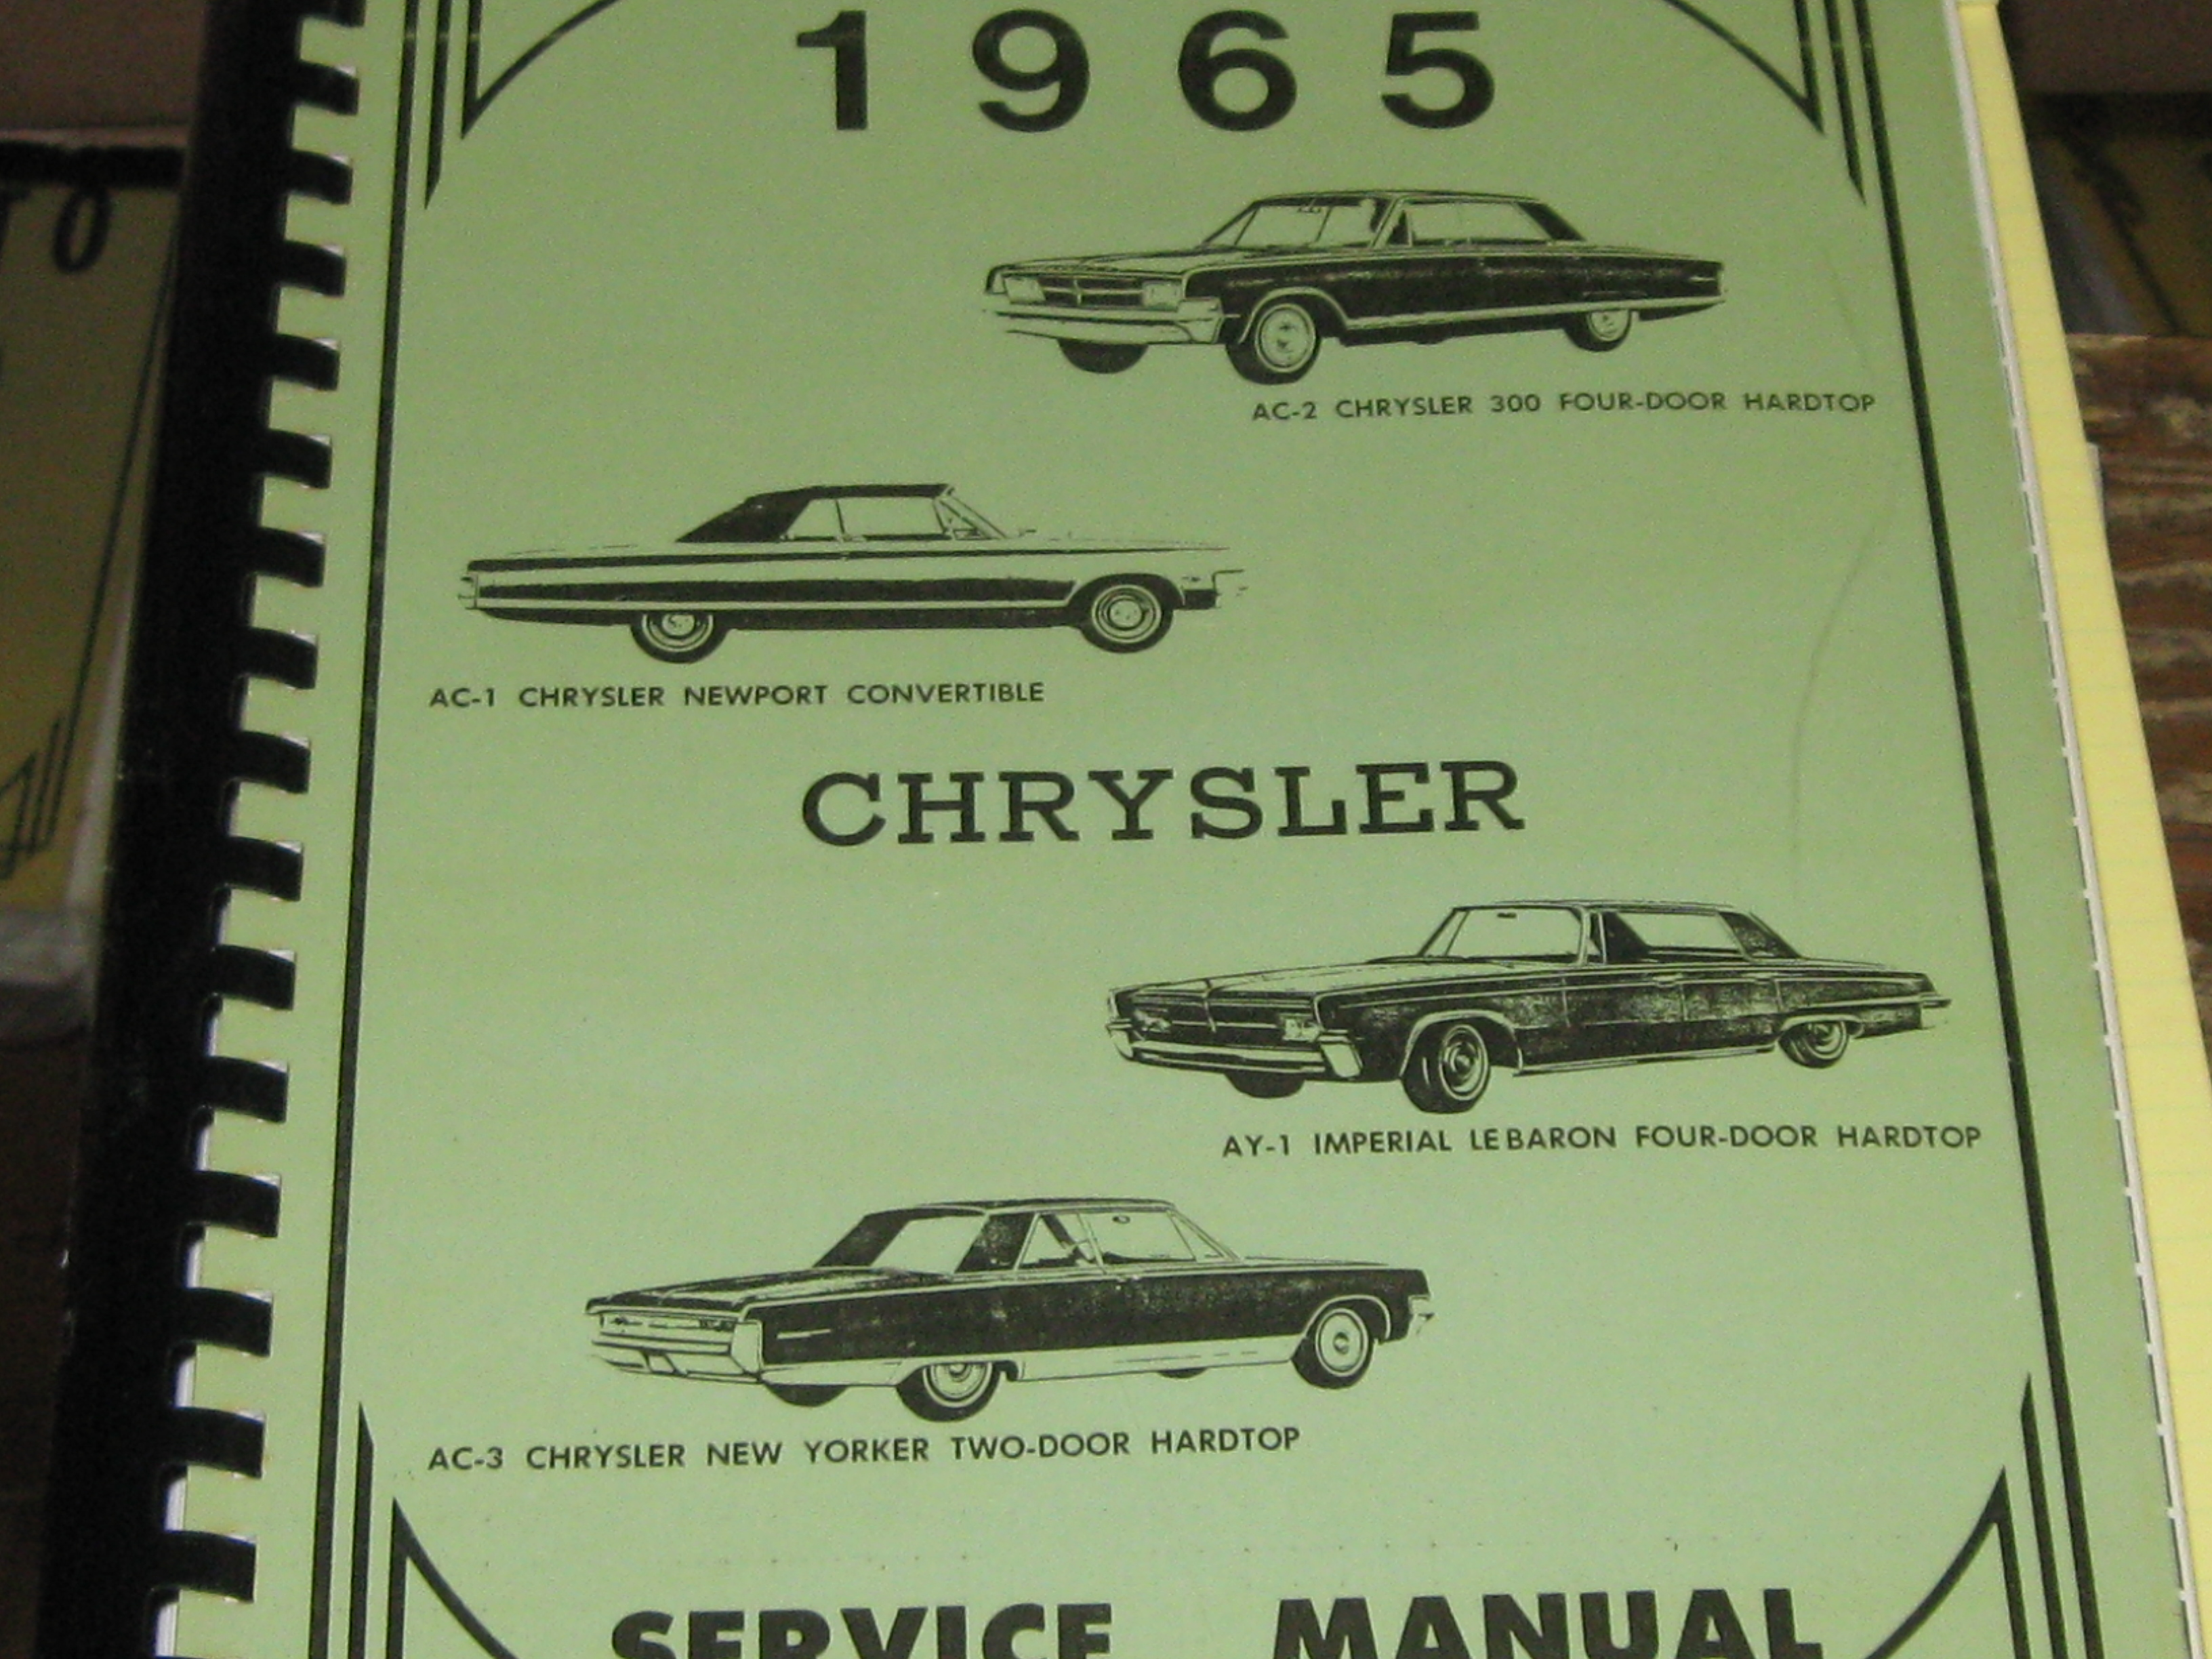 then and now automotive 1965 chrysler shop manual then and now rh then now auto com chrysler service manual chrysler outboard shop manual